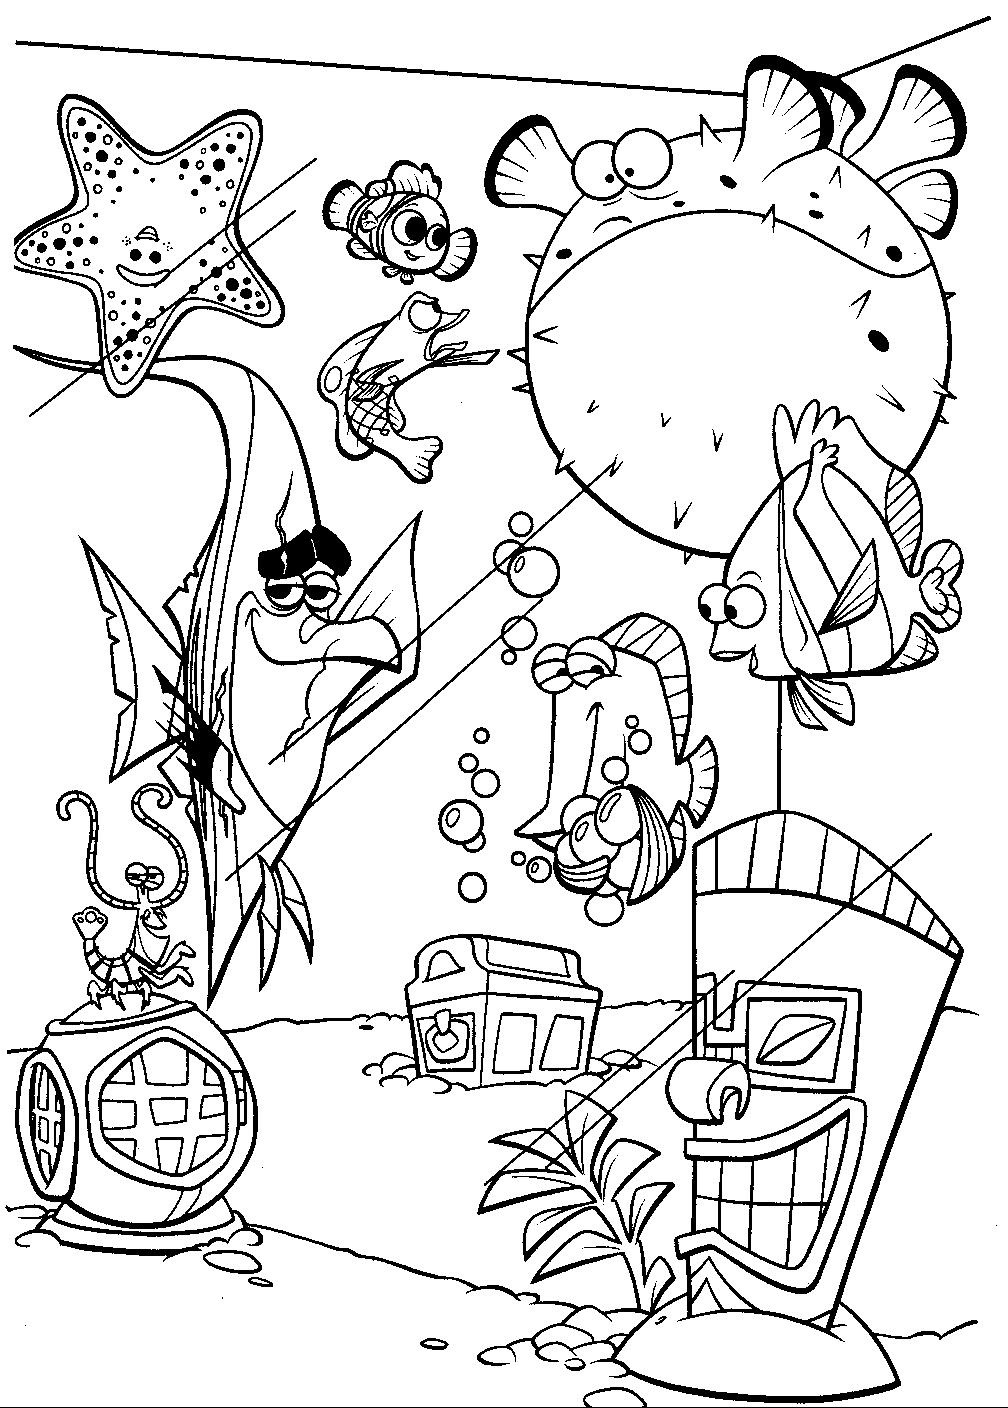 Coloring Pages Finding Dory At Getdrawings Com Free For Personal